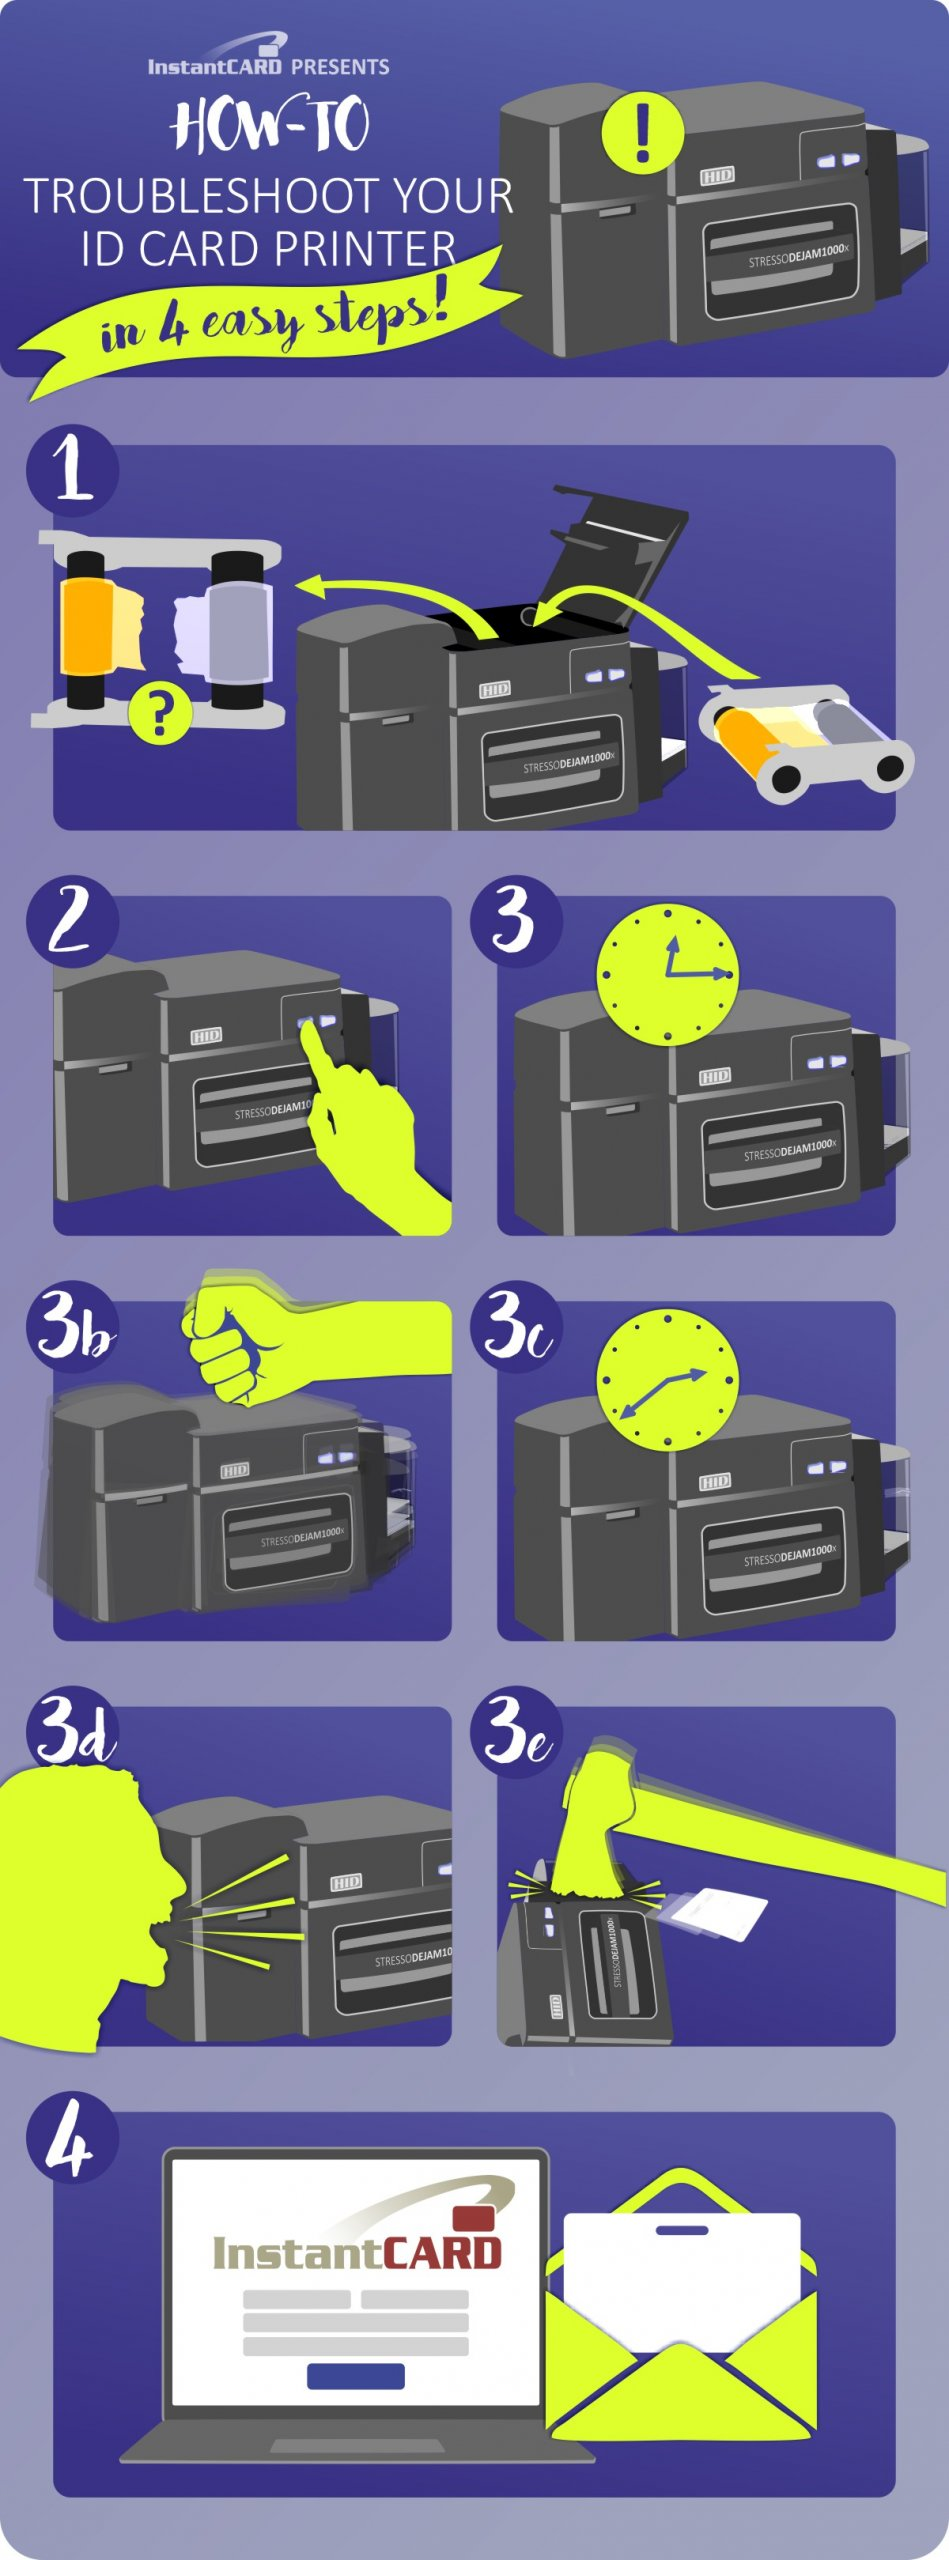 How to troubleshoot your ID Card Printer in 4 Easy Steps infographic